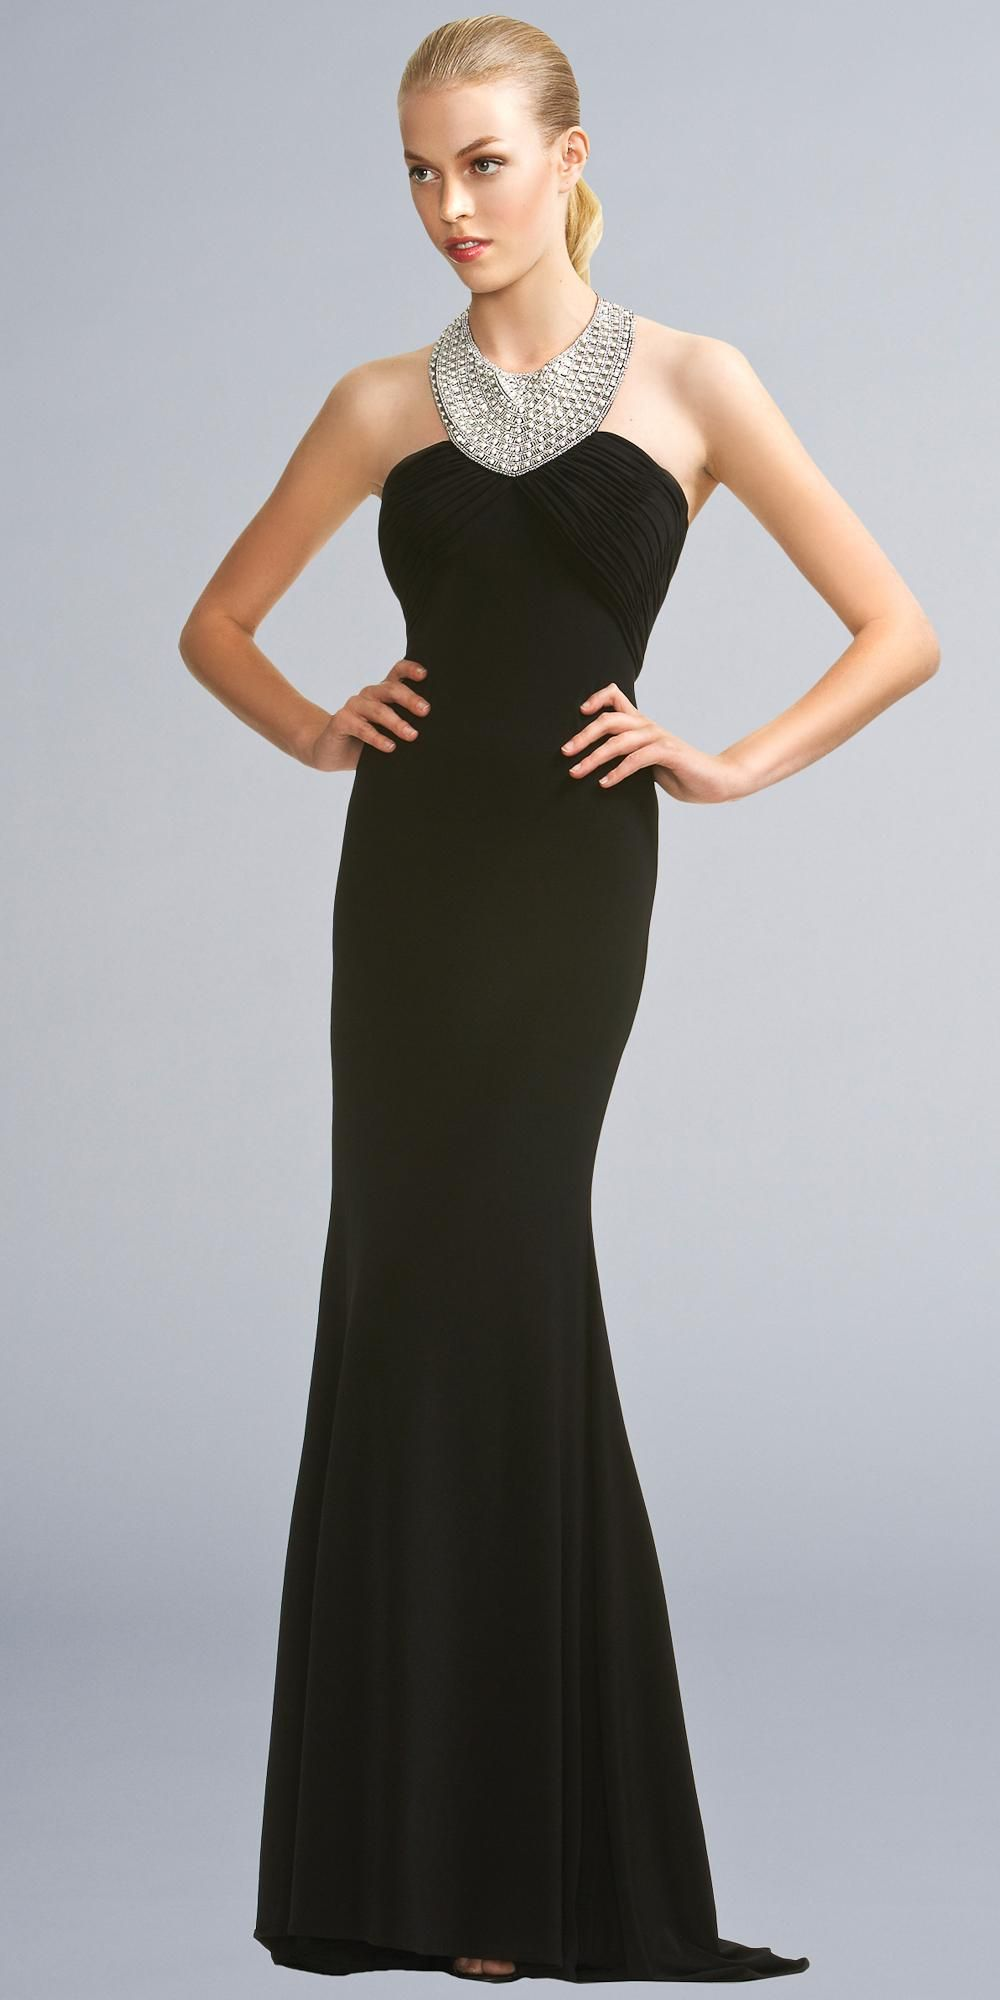 17 best images about EVENING GOWNS on Pinterest | Ralph lauren ...